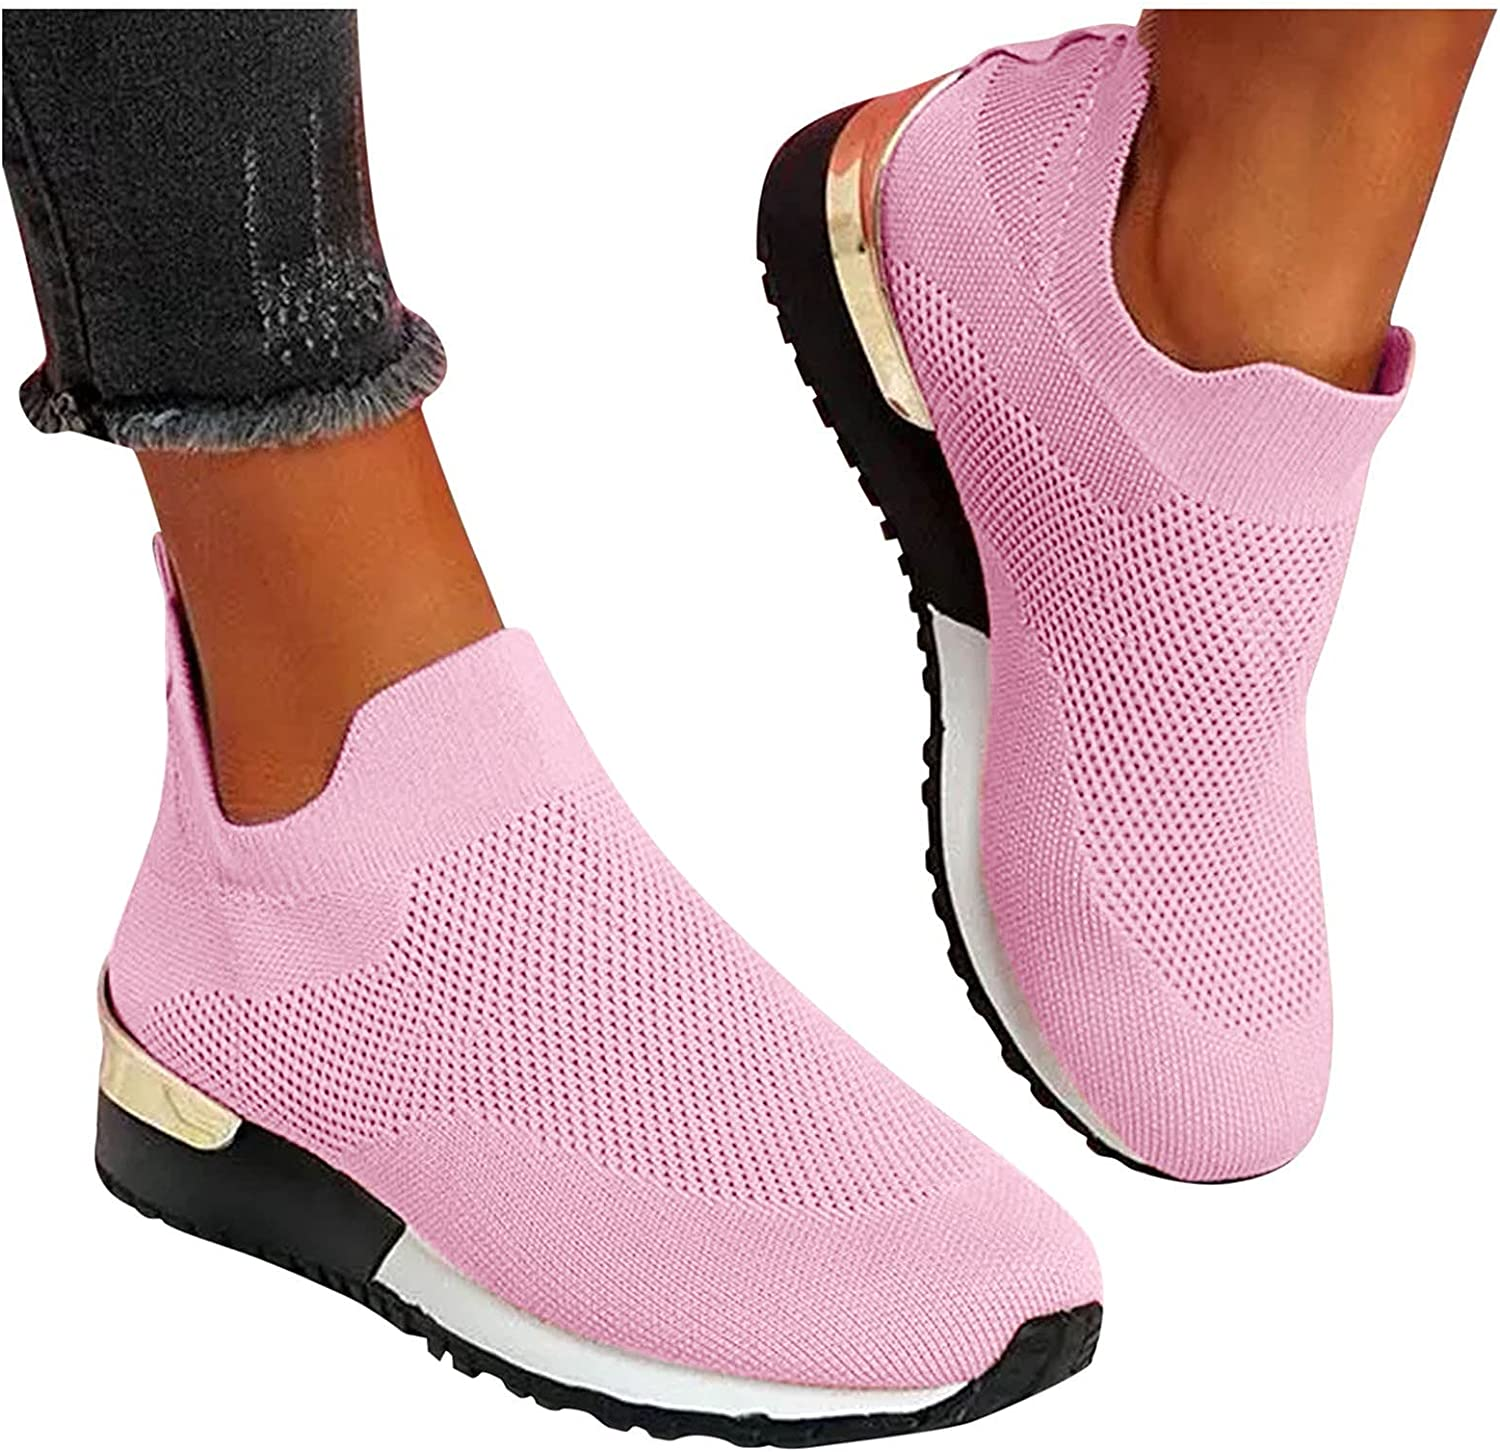 UOCUFY Sneakers for Women Slip On Low Tops Wedge Platform Shoes Lightweight Walking Shoes Comfortable Athletic Shoes